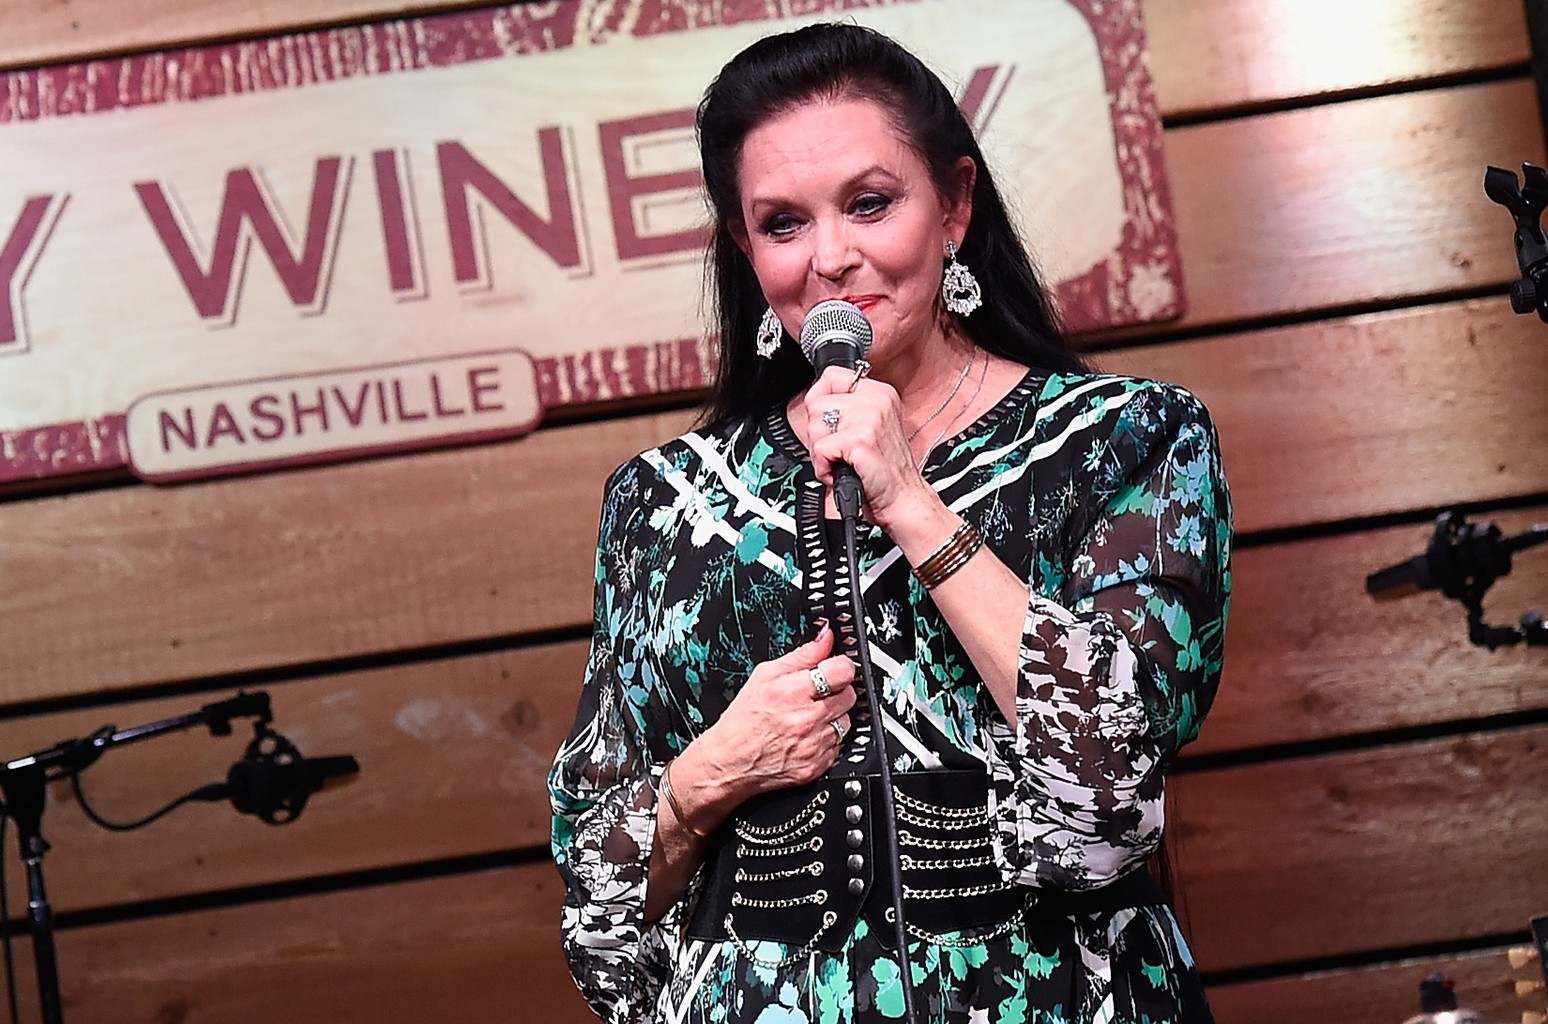 Crystal Gayle performs during A Celebration of Life in Honor of Jeff Walker at City Winery Nashville on September 10, 2015 in Nashville, Tennessee.  (Photo by Rick Diamond/Getty Images)